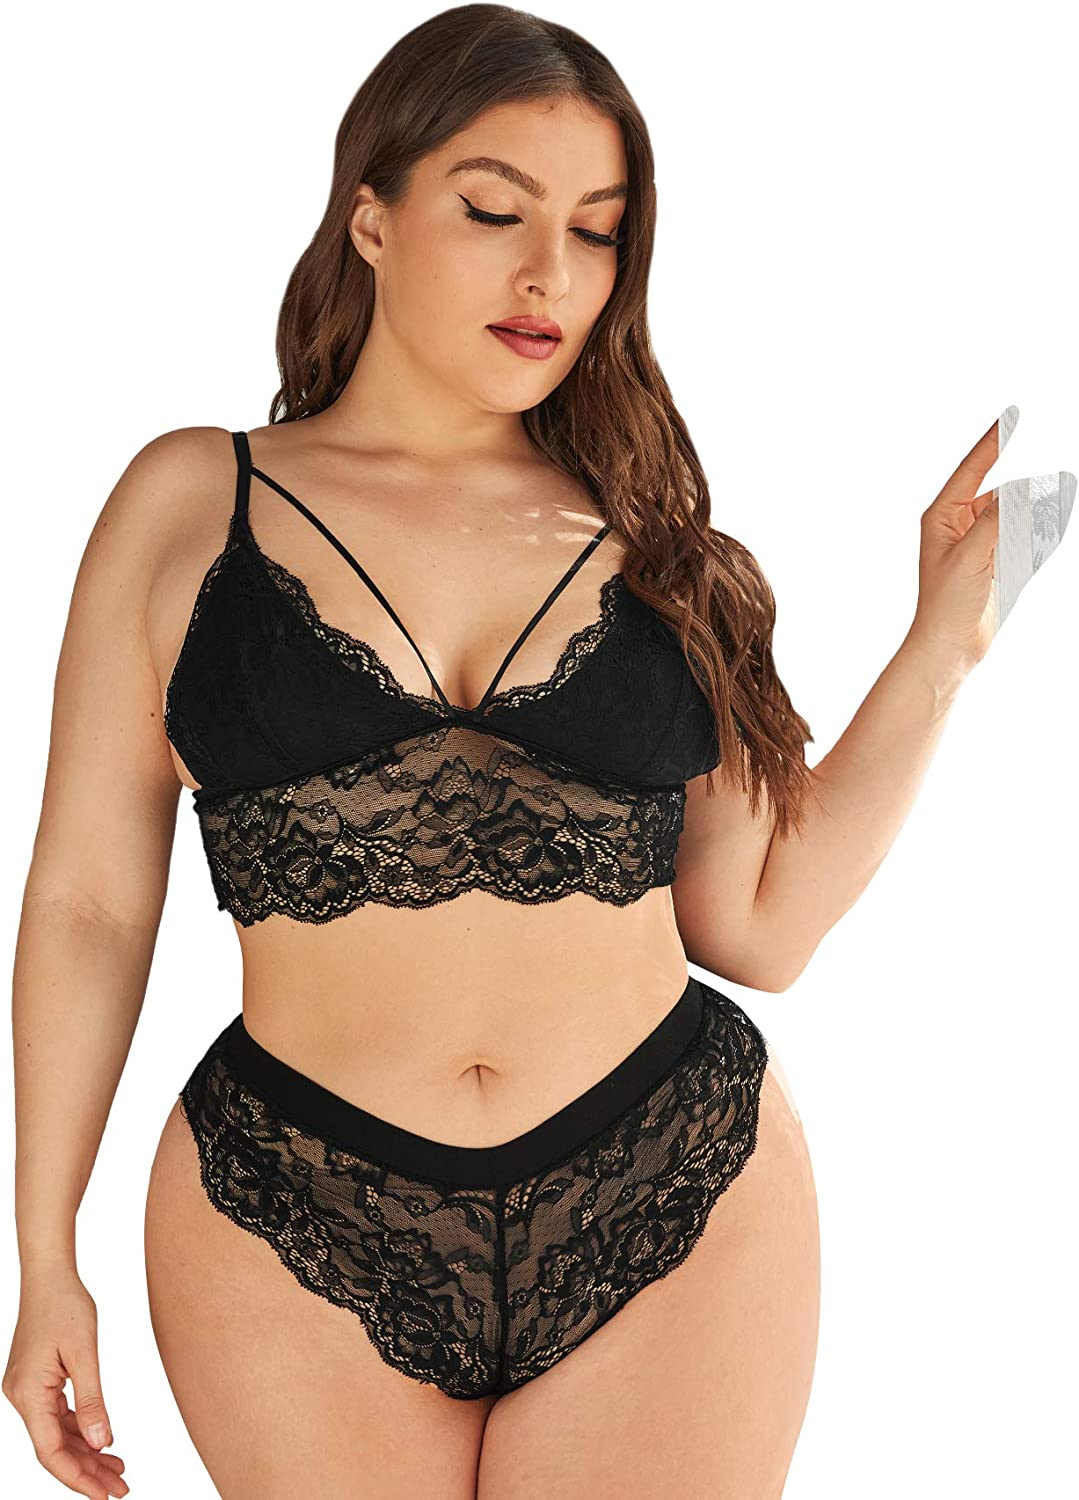 SheIn Women's Plus Size 2 Piece Sheer Mesh Lingerie Set Floral Lace Bra and Panty